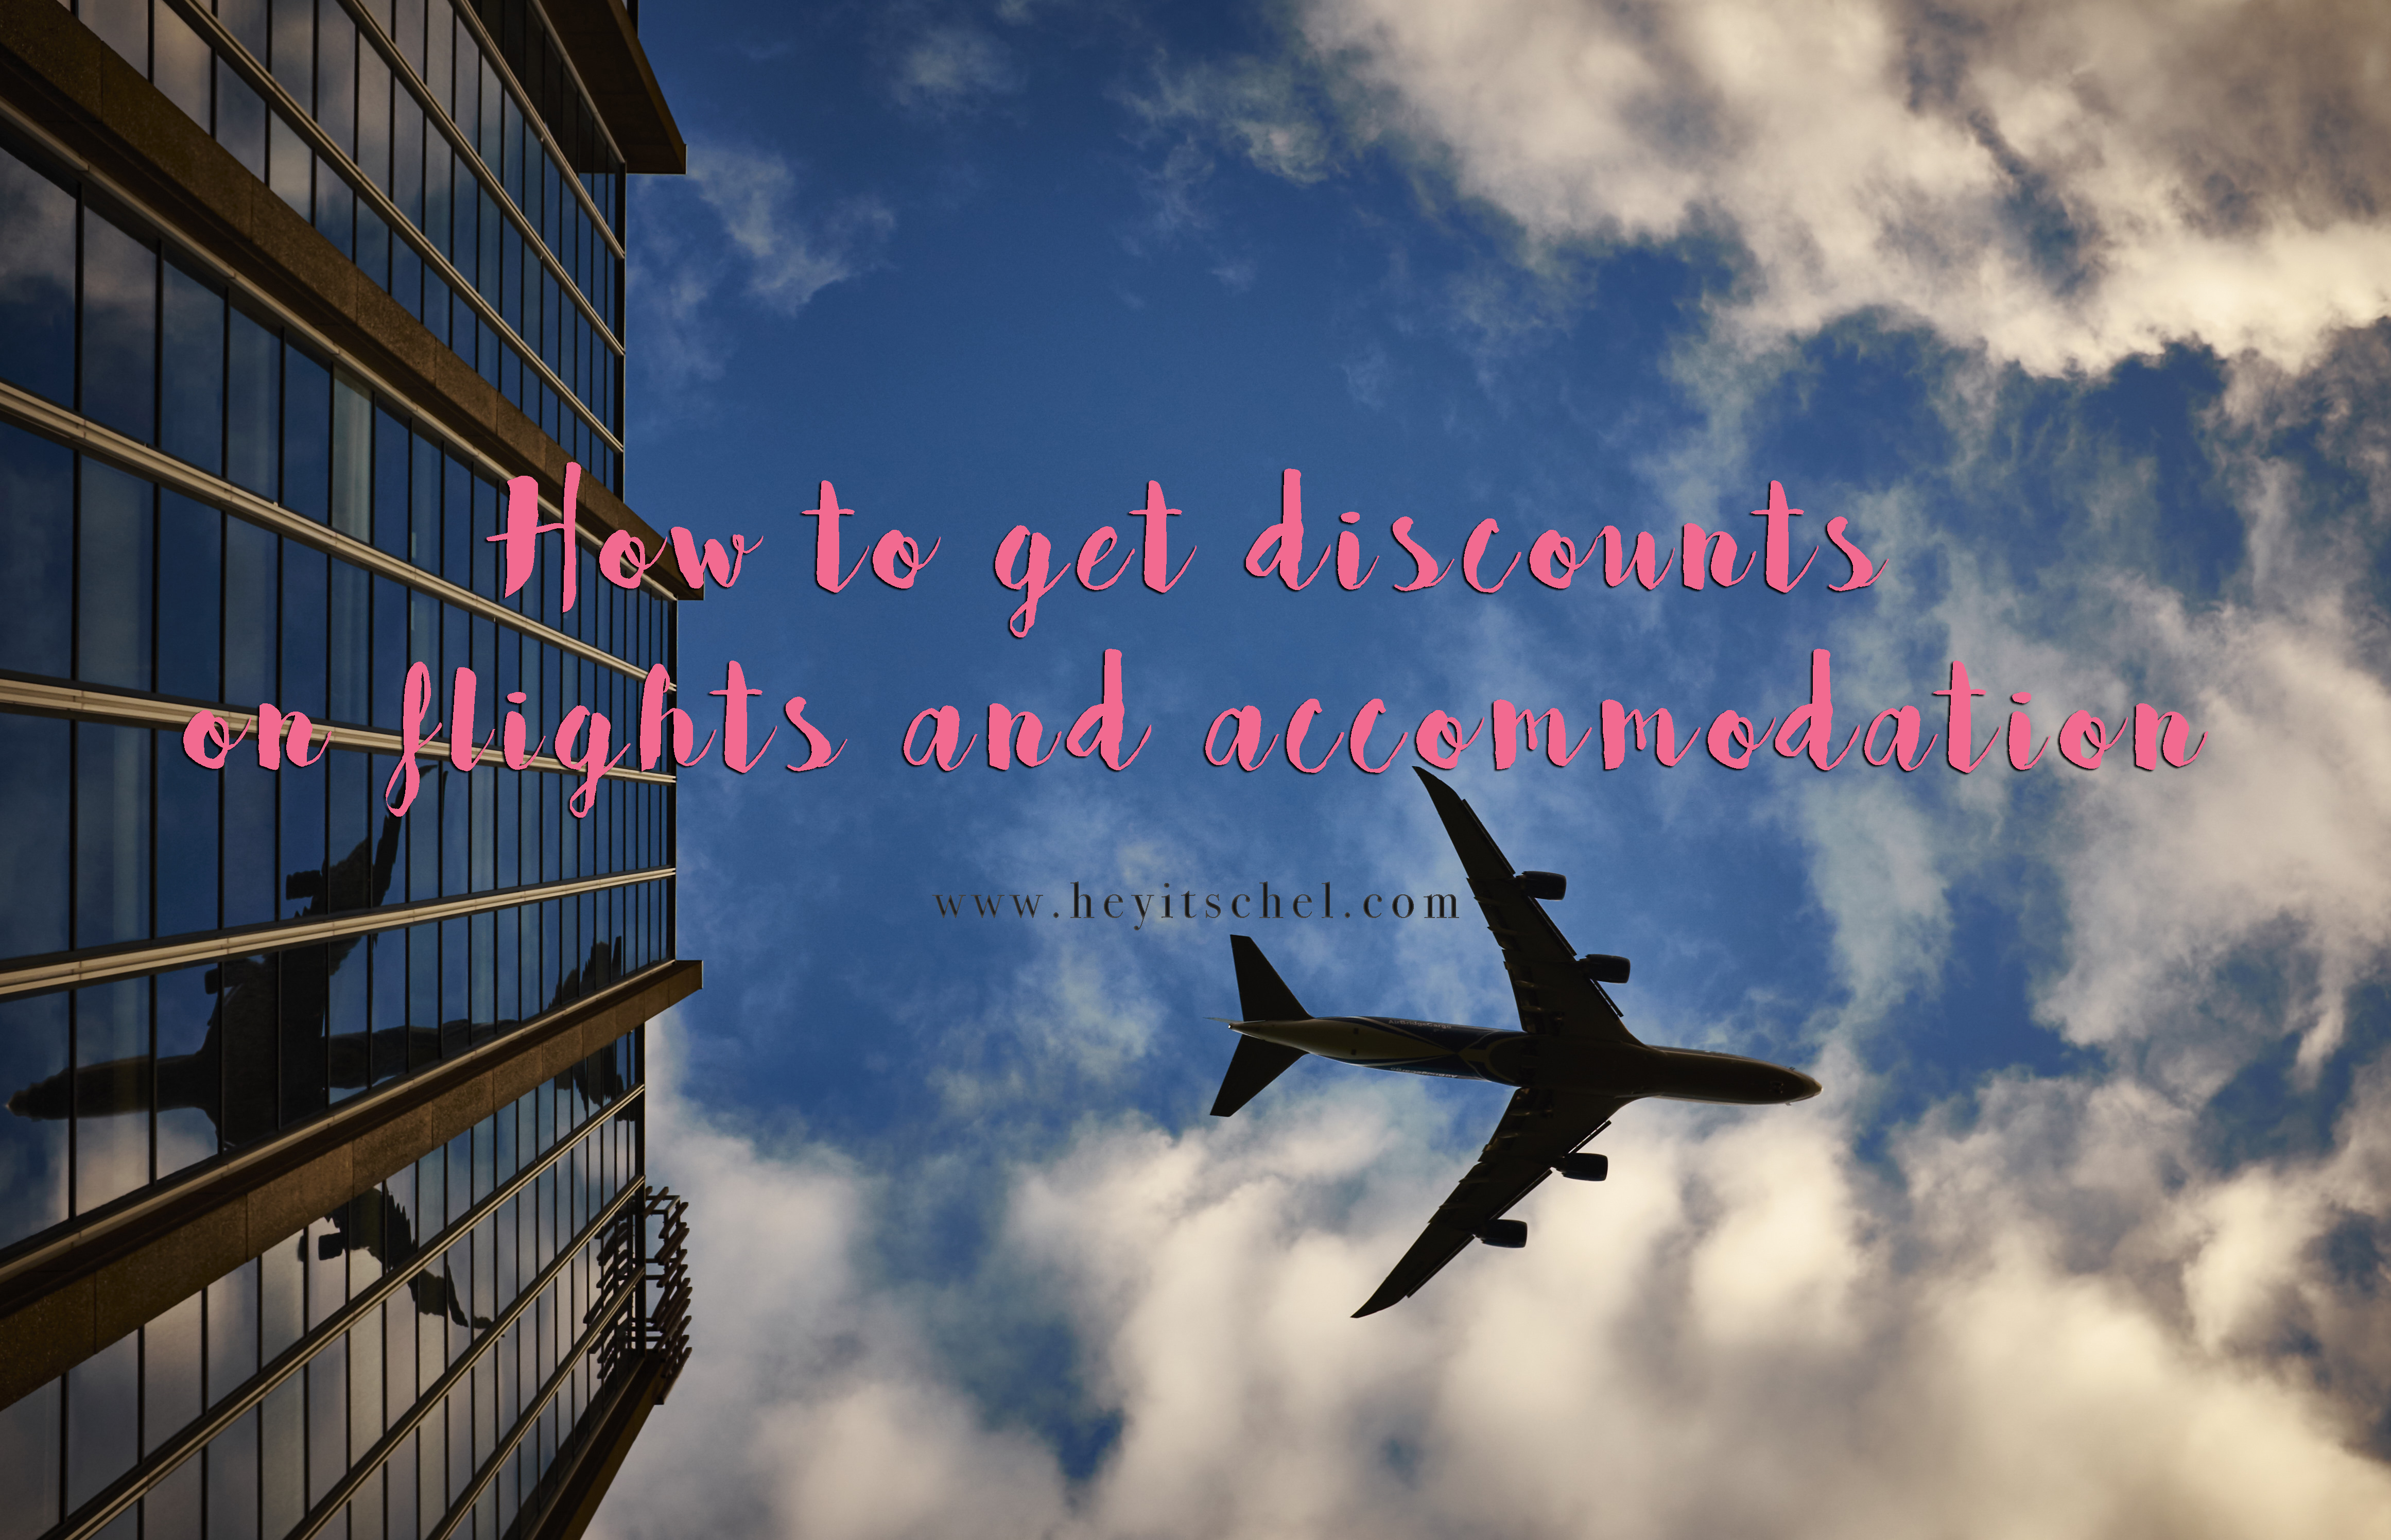 How to get discounts on flights and accommodation